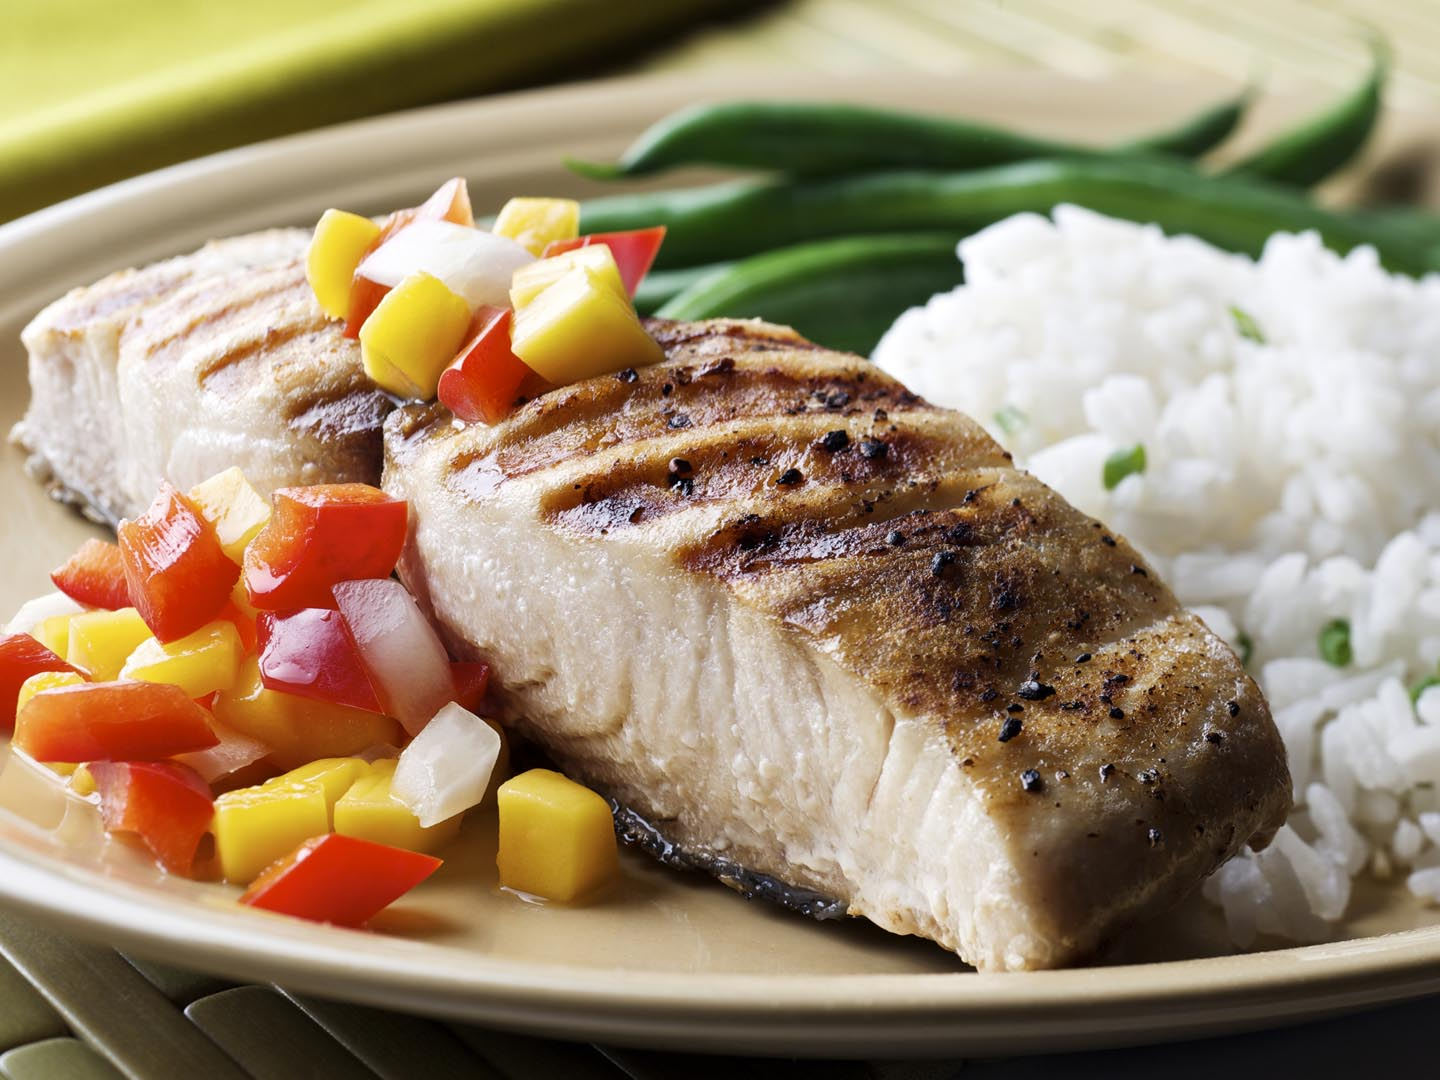 SEVERAL MORE IN THIS SERIES. Grilled cutlet (open steak cut) of mahi ...